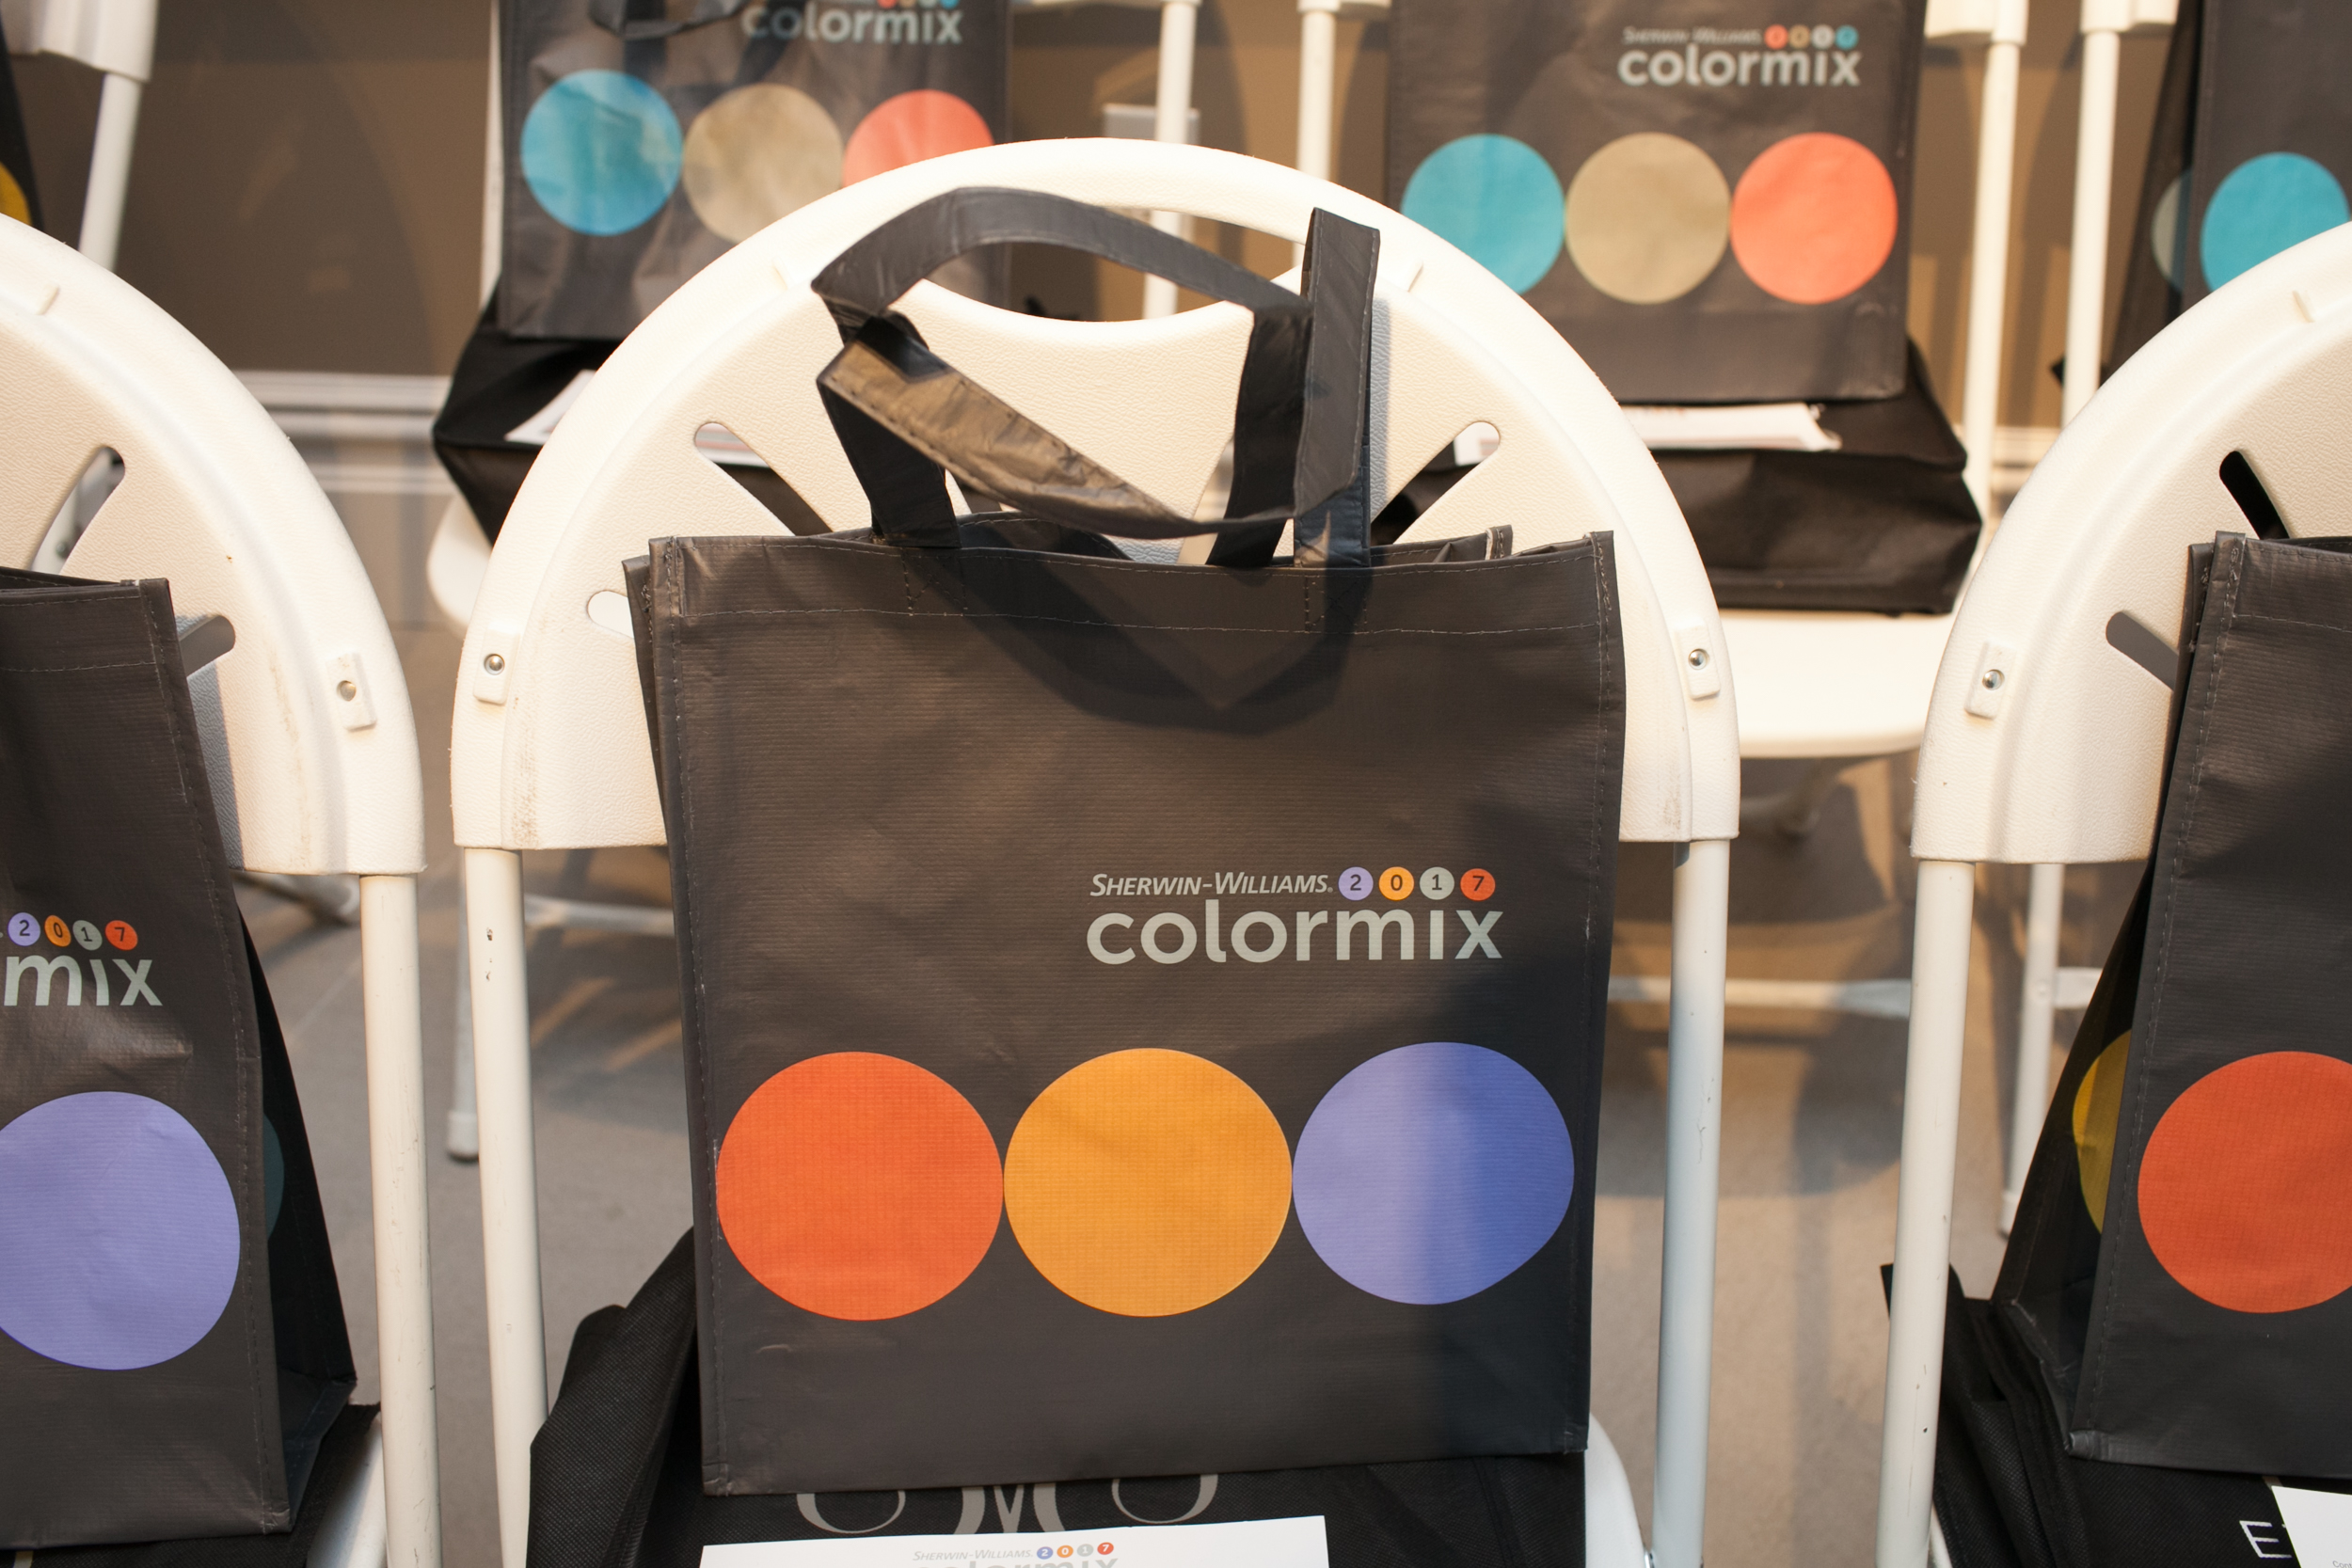 Sherwin-Williams Colormix bags for attendees